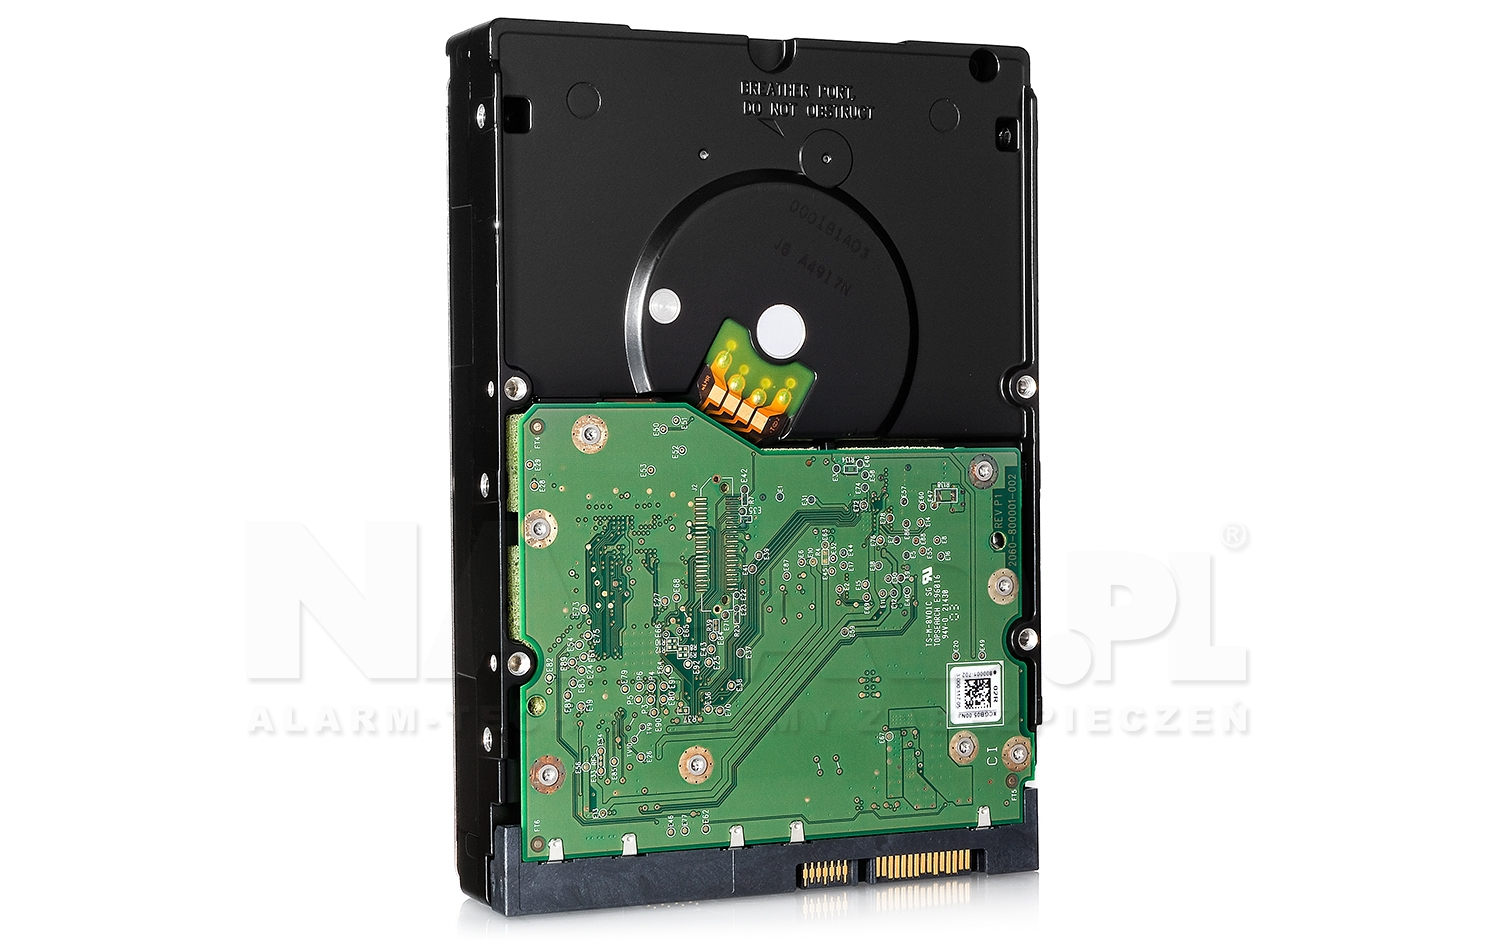 Dysk 6TB SATA III Western Digital Purple